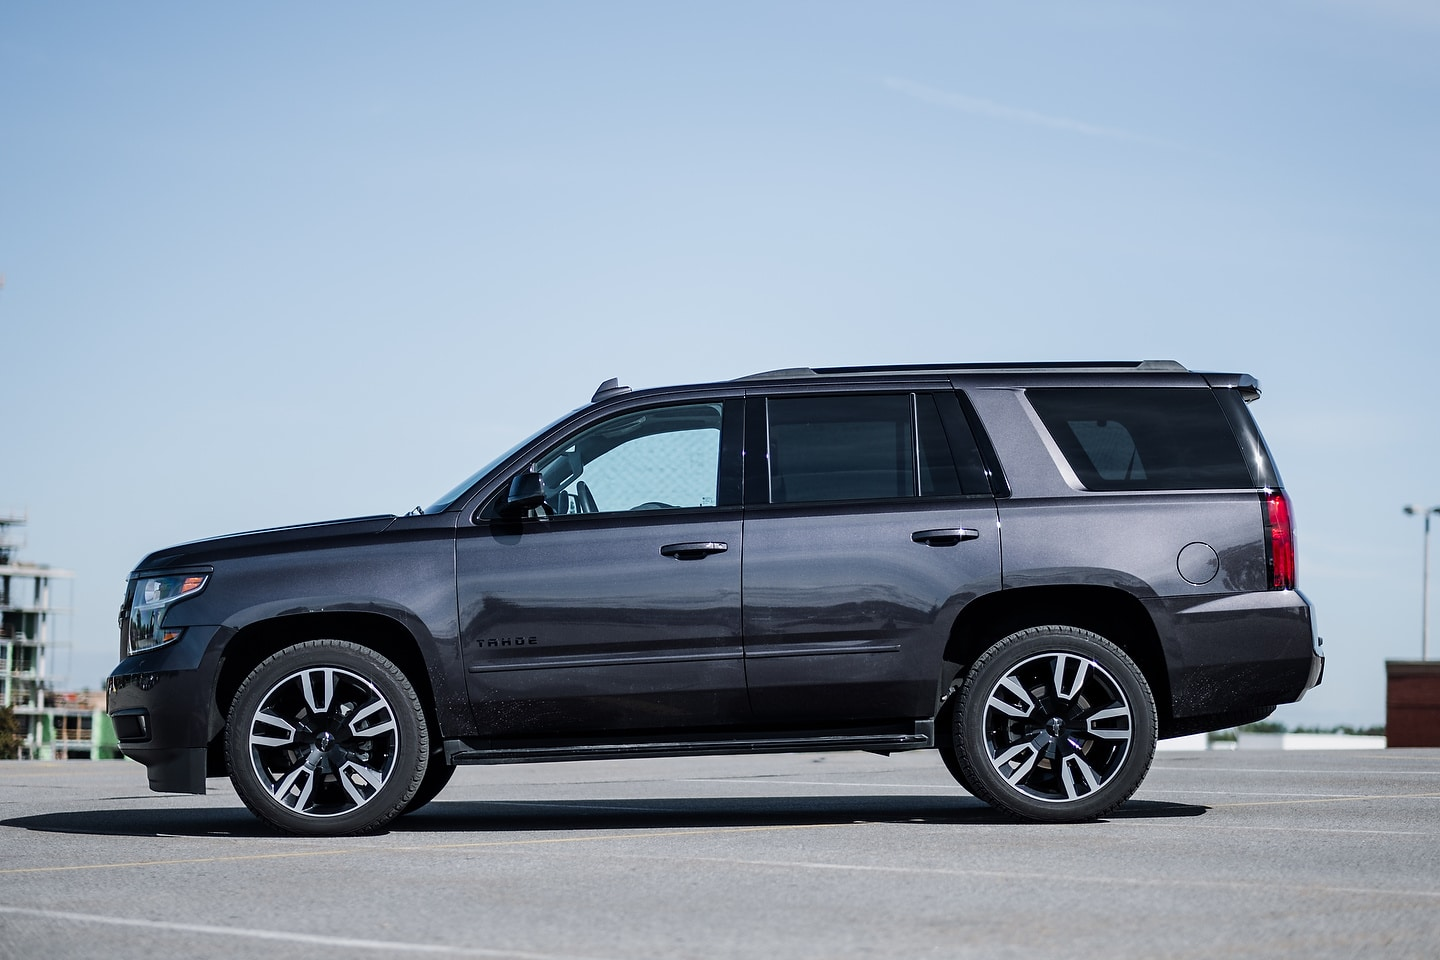 2018 Chevrolet Tahoe Premier Rst Review Standing The Test Of Time Motor Illustrated